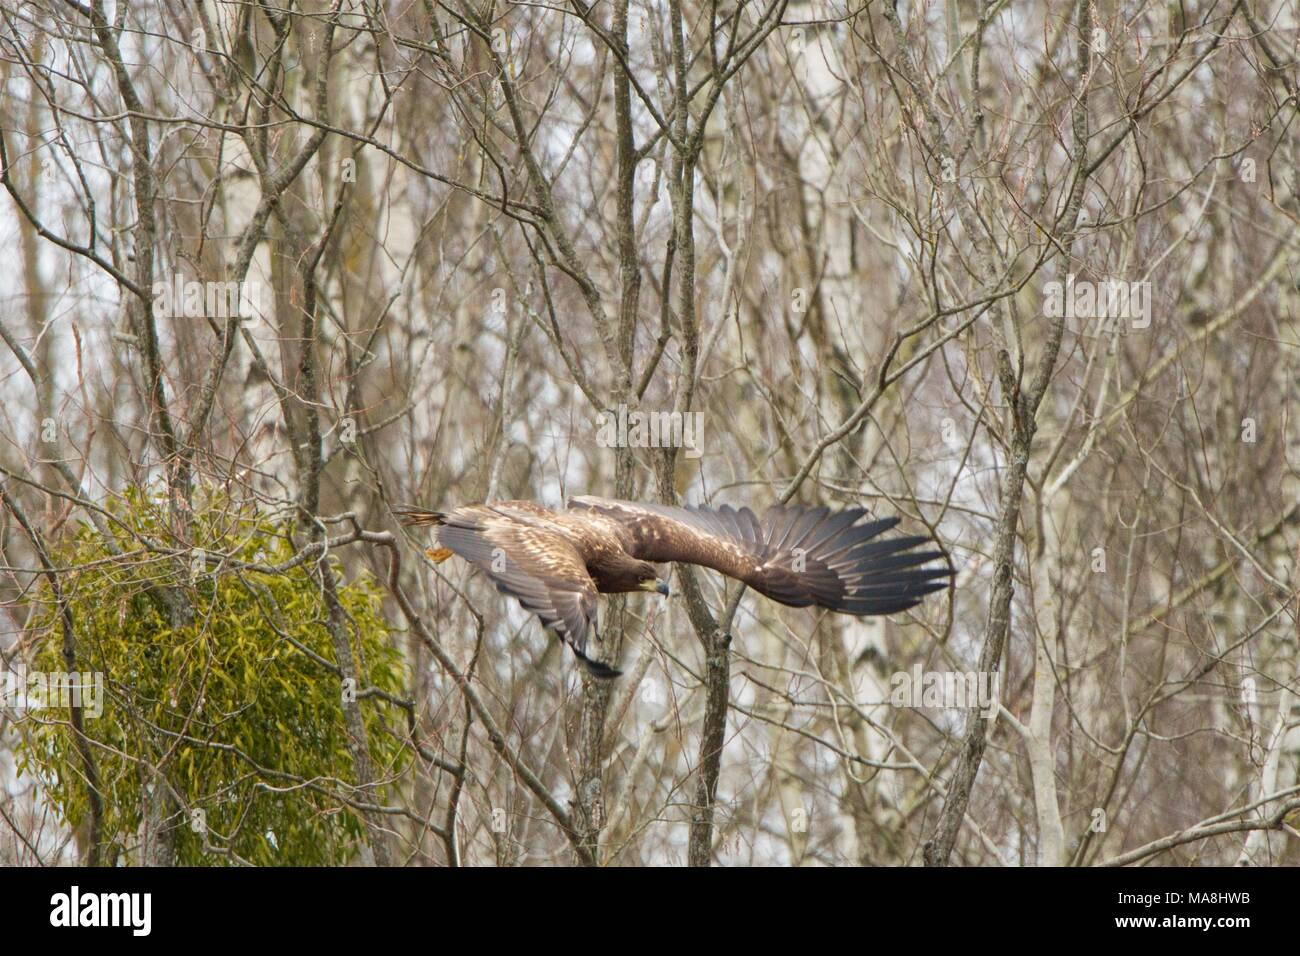 Young White-tailed Eagle in flight. Bialowieza Forest, Poland Stock Photo